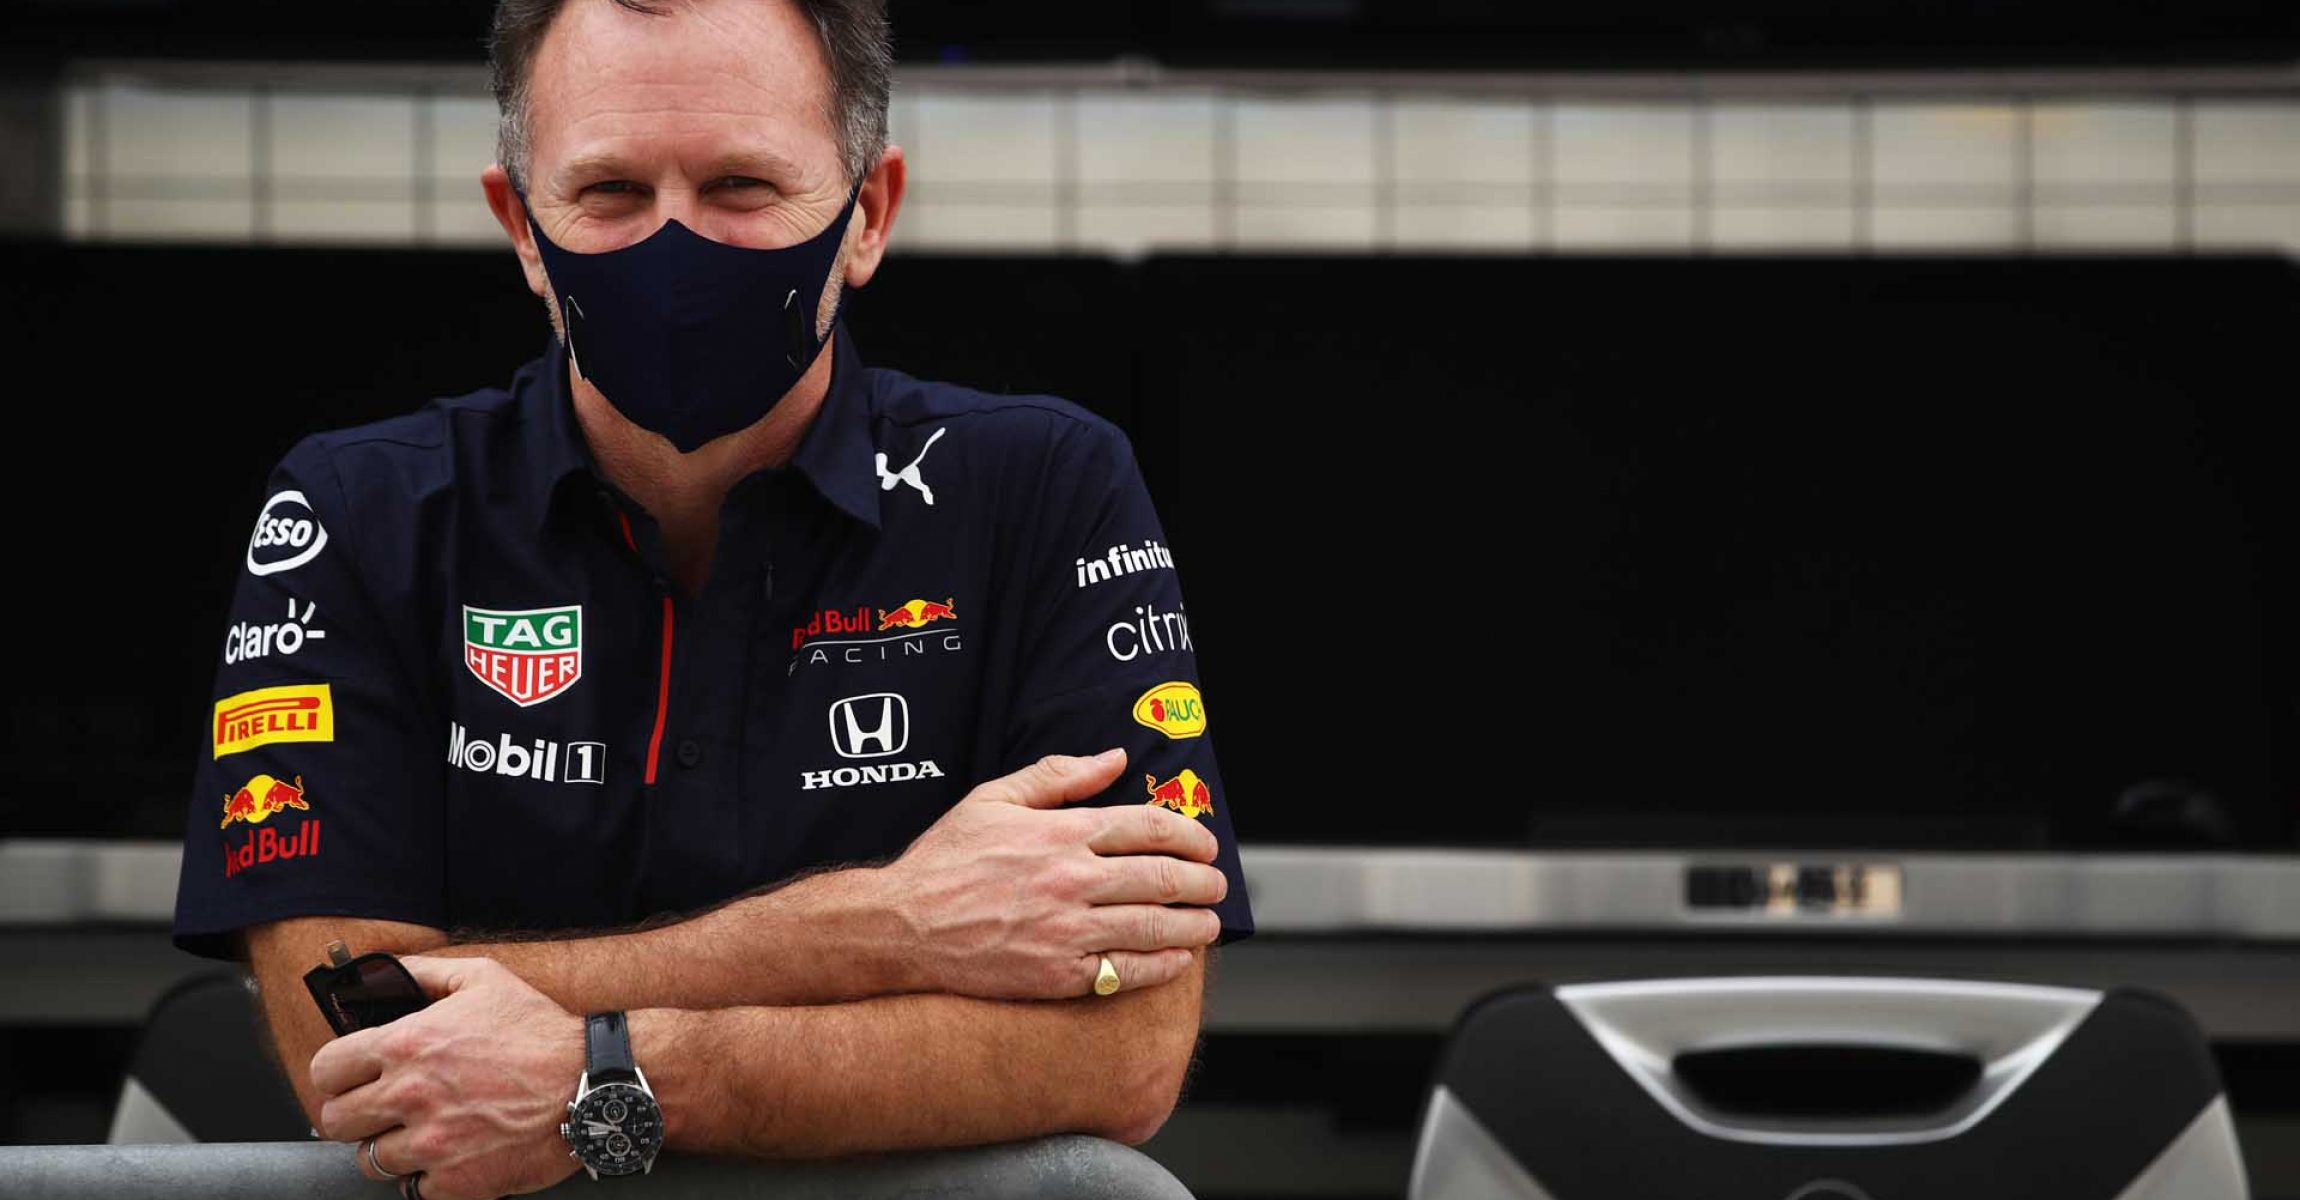 BAHRAIN, BAHRAIN - MARCH 12: Red Bull Racing Team Principal Christian Horner looks on from the pitwall during Day One of F1 Testing at Bahrain International Circuit on March 12, 2021 in Bahrain, Bahrain. (Photo by Mark Thompson/Getty Images) // Getty Images / Red Bull Content Pool  // SI202103121082 // Usage for editorial use only //